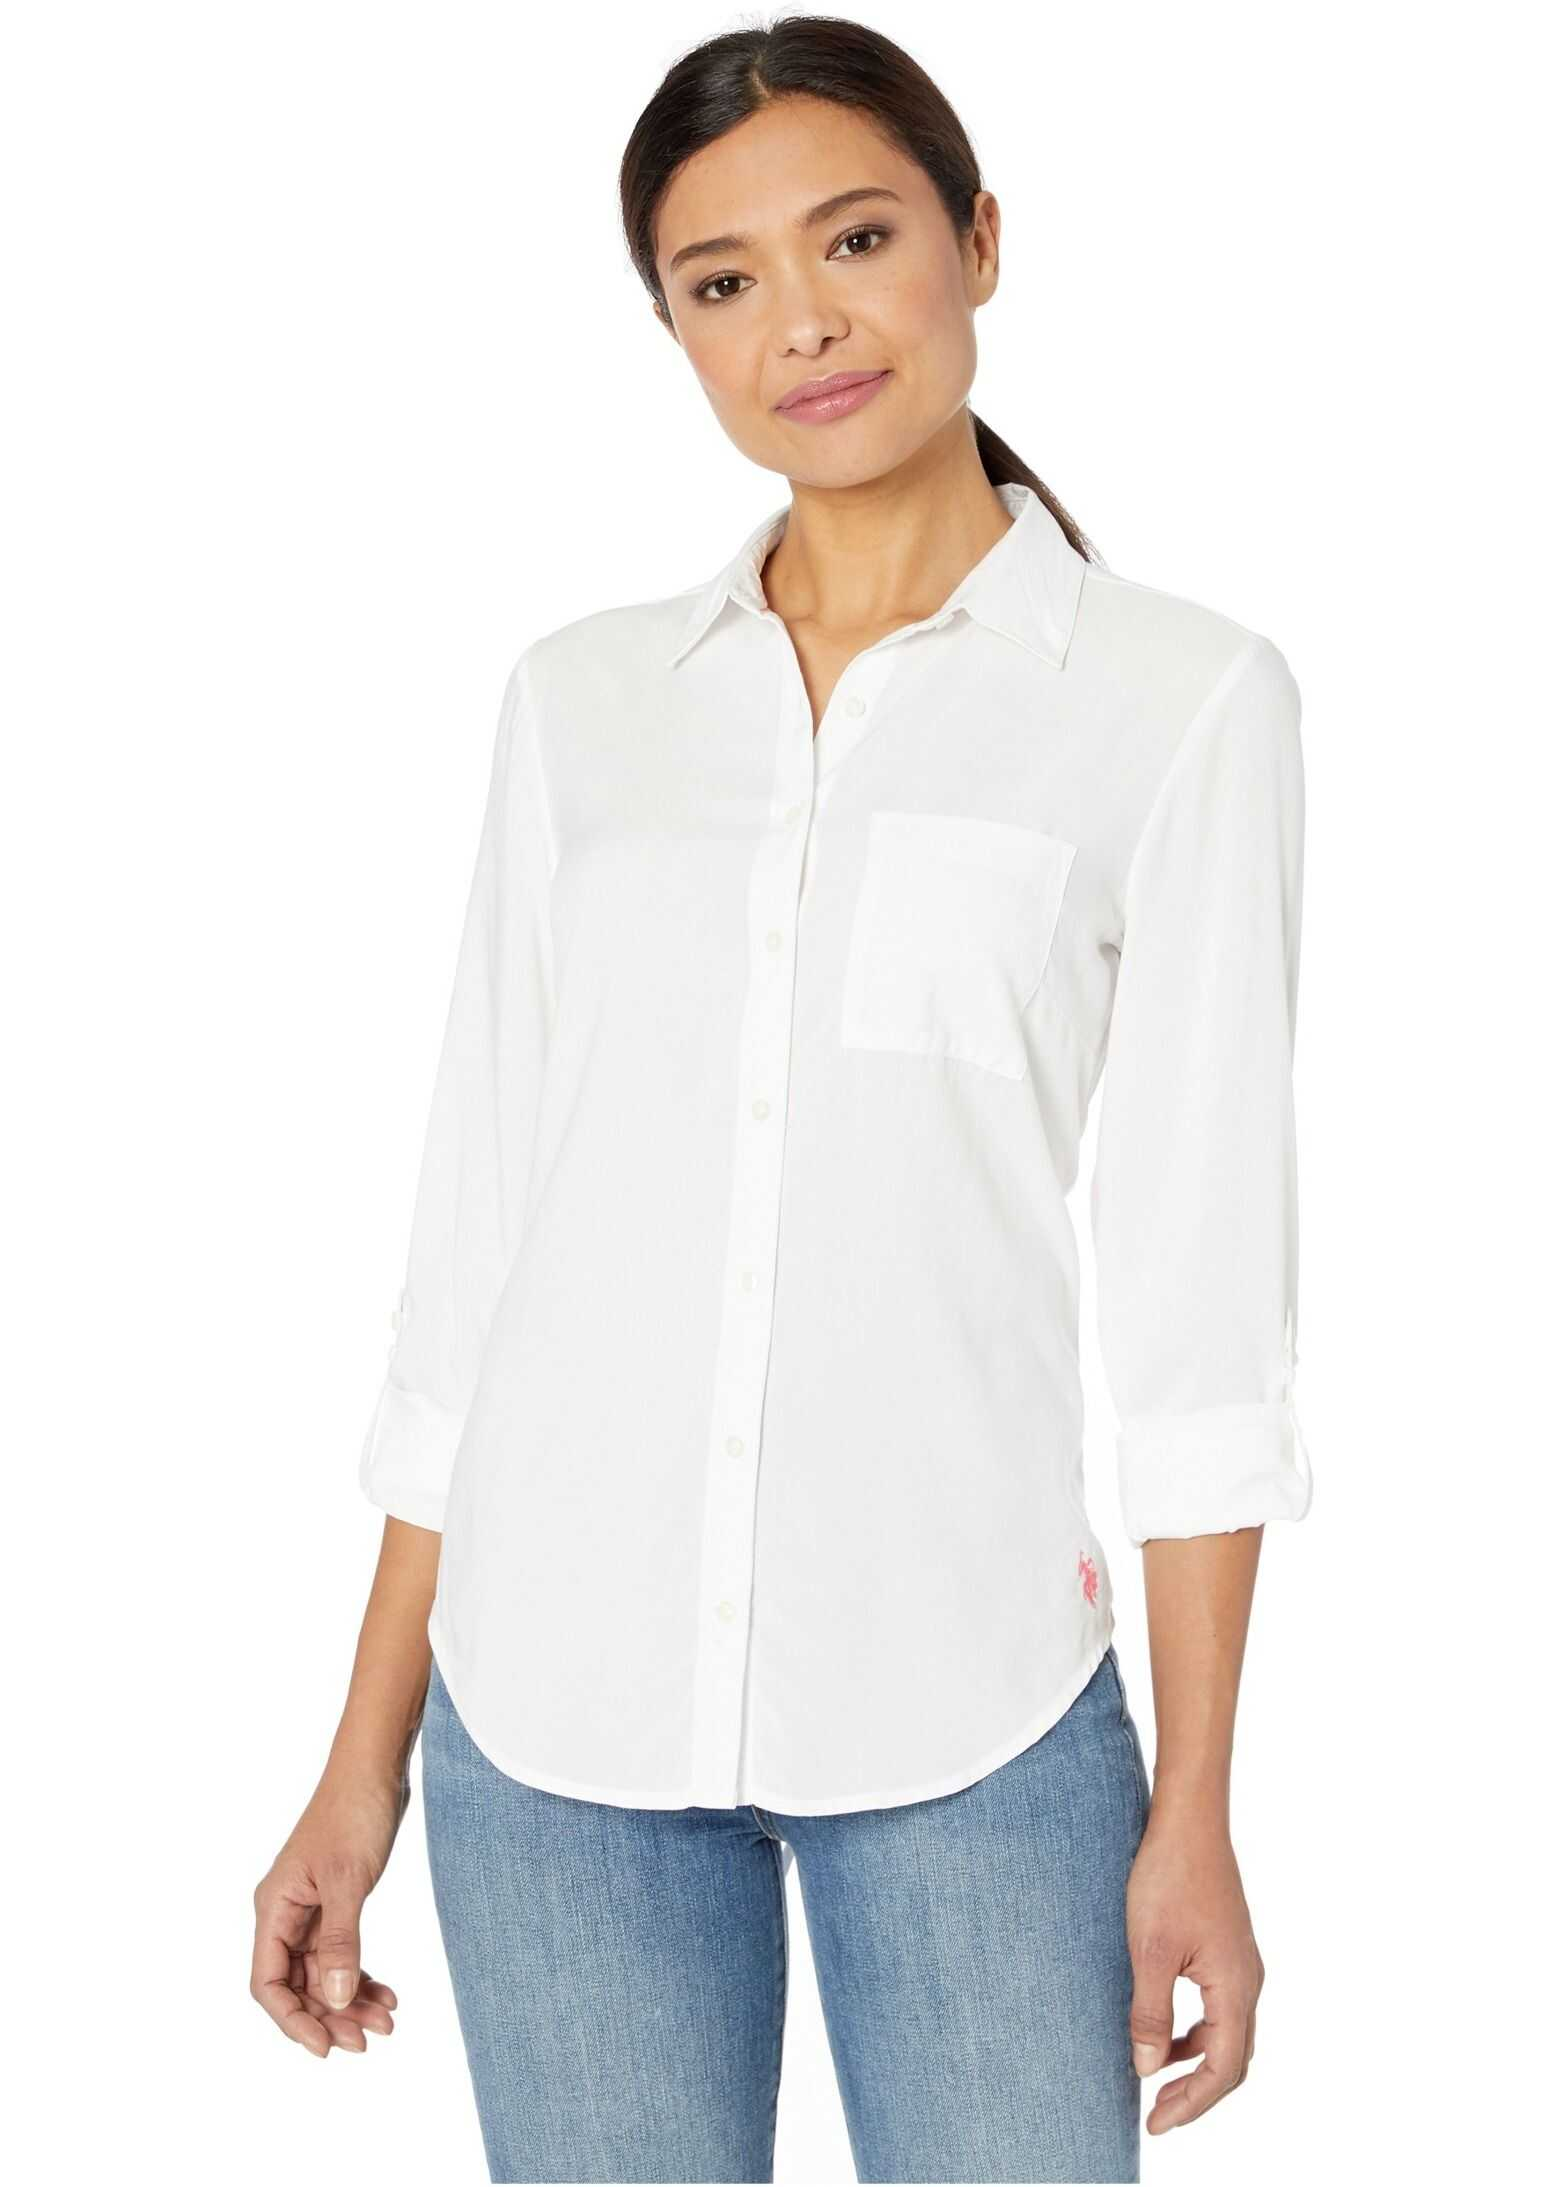 U.S. POLO ASSN. Solid Woven Lace Back Shirt Optic White